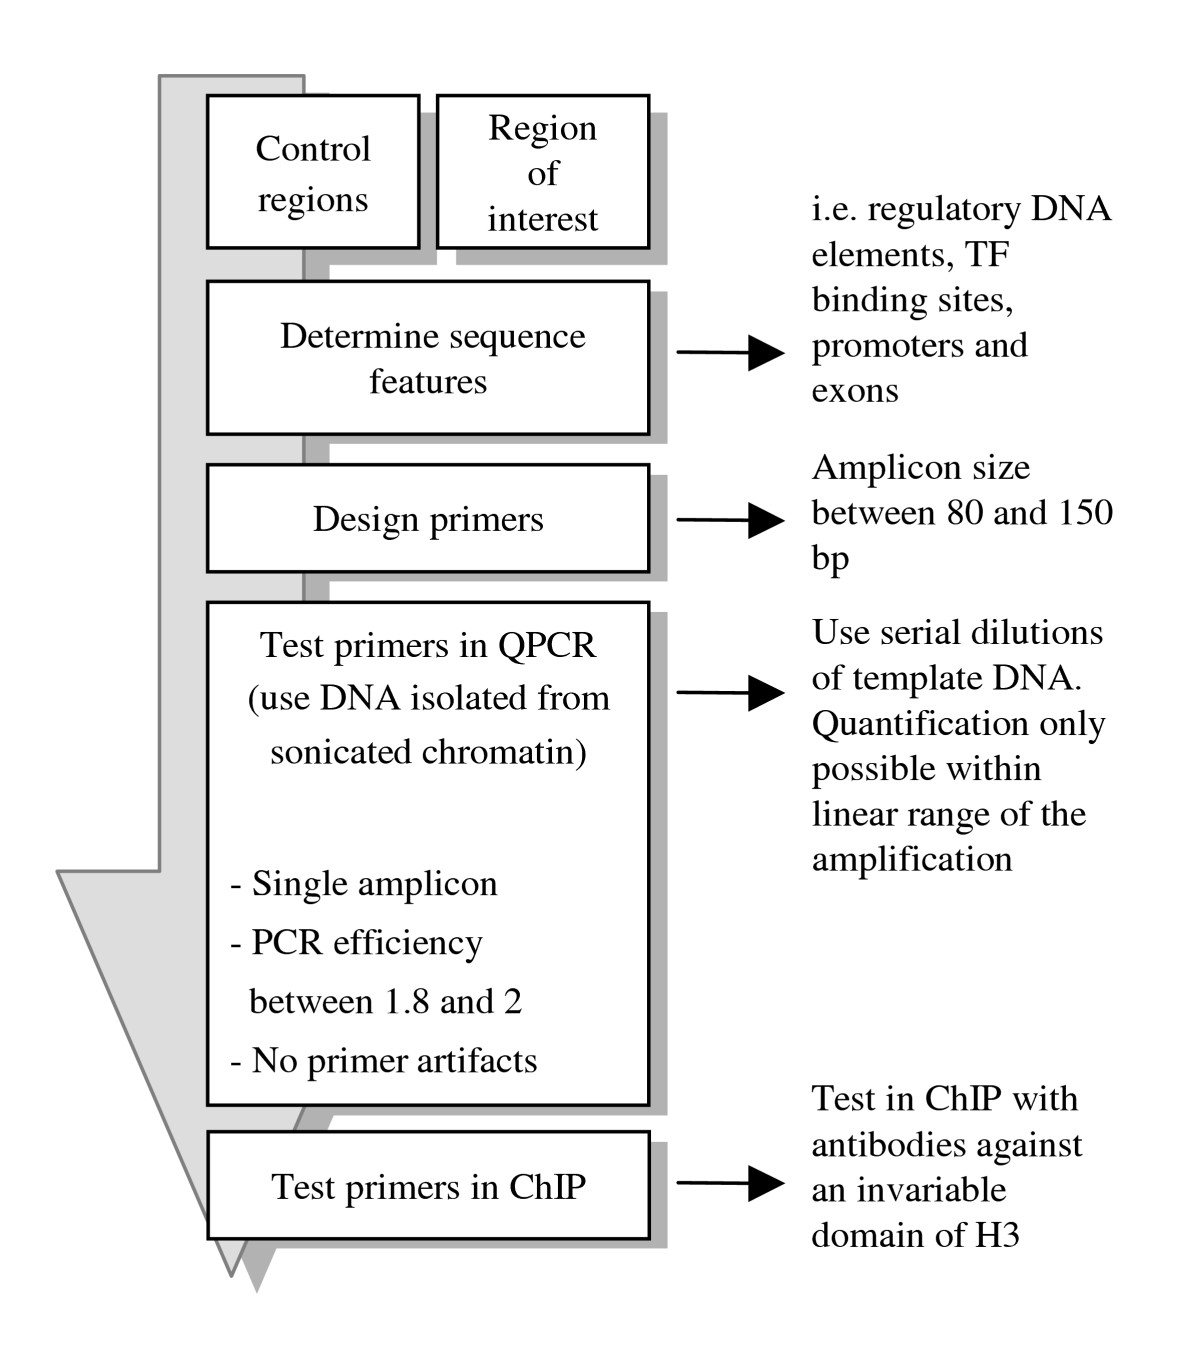 http://static-content.springer.com/image/art%3A10.1186%2F1746-4811-3-11/MediaObjects/13007_2007_Article_45_Fig4_HTML.jpg